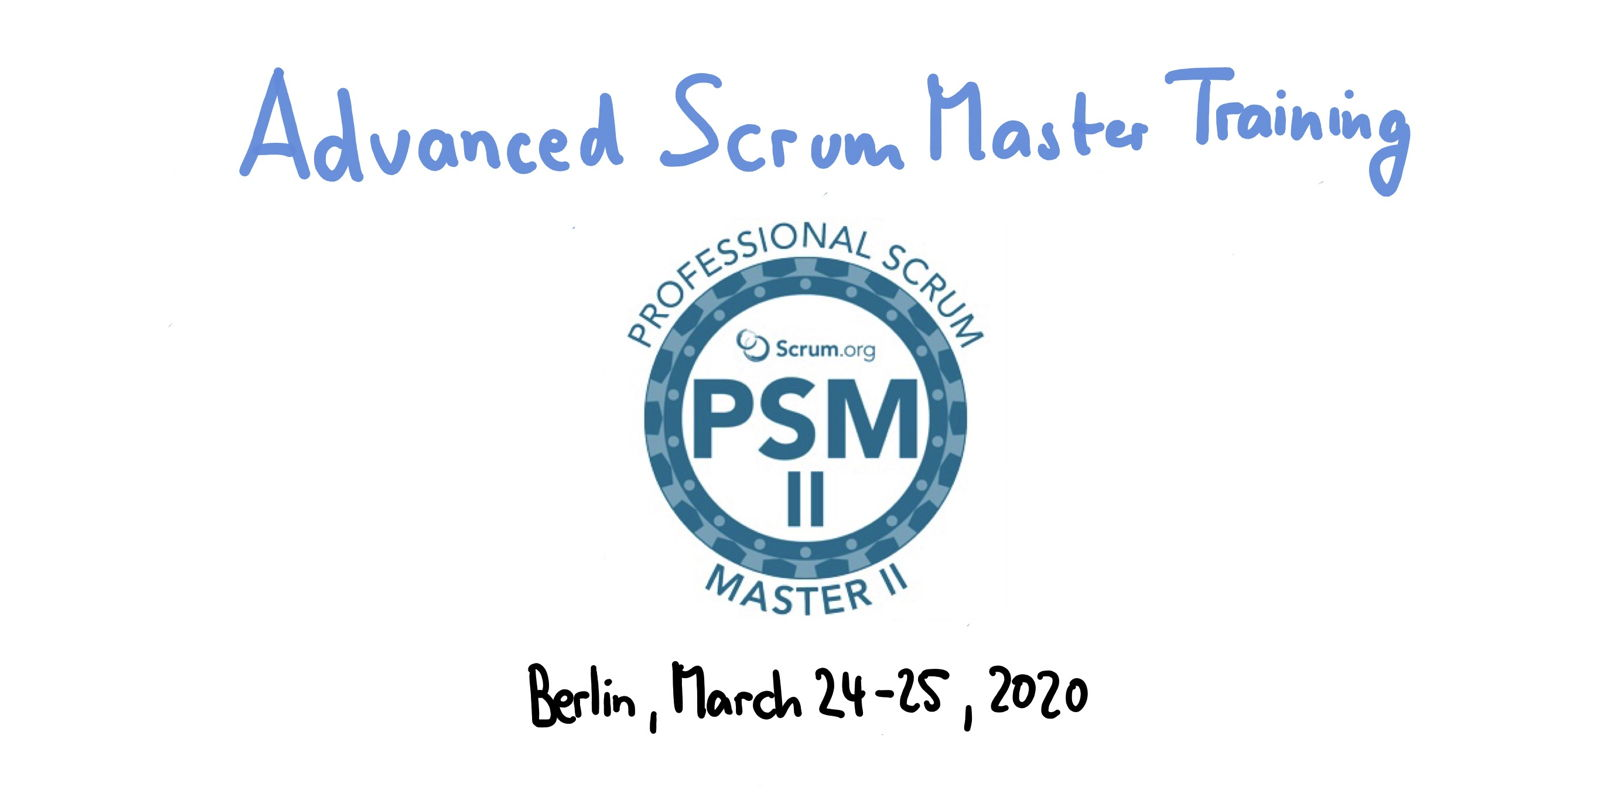 📅 Professional Scrum Master Training PSM II — Berlin, March 24-25, 2020